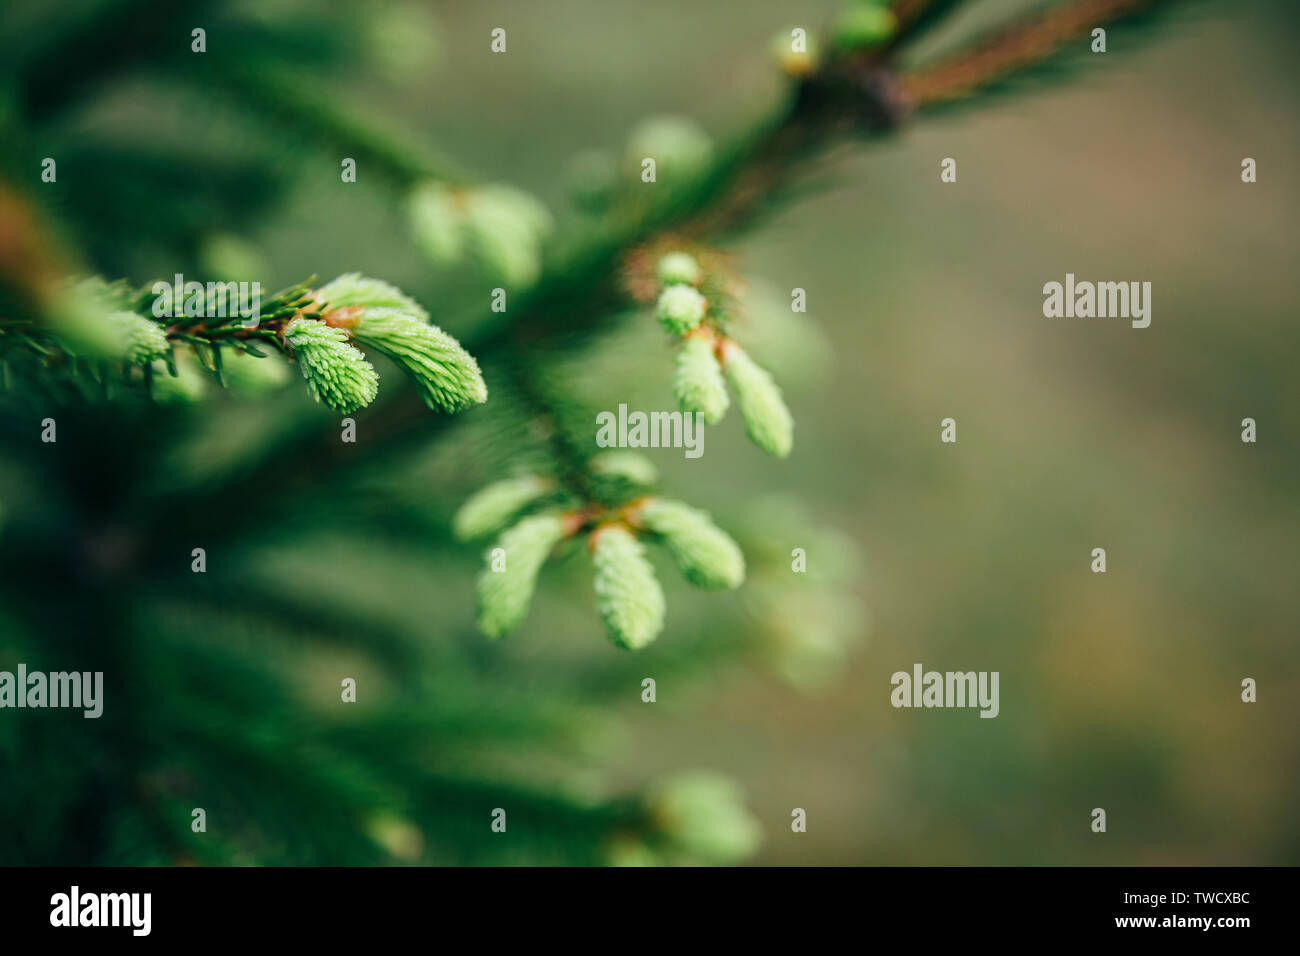 Young fir tree needles with water drops. Horizontal close up of morning dew on fir tree branches with forest in the background. Raindrops on green fir - Stock Image